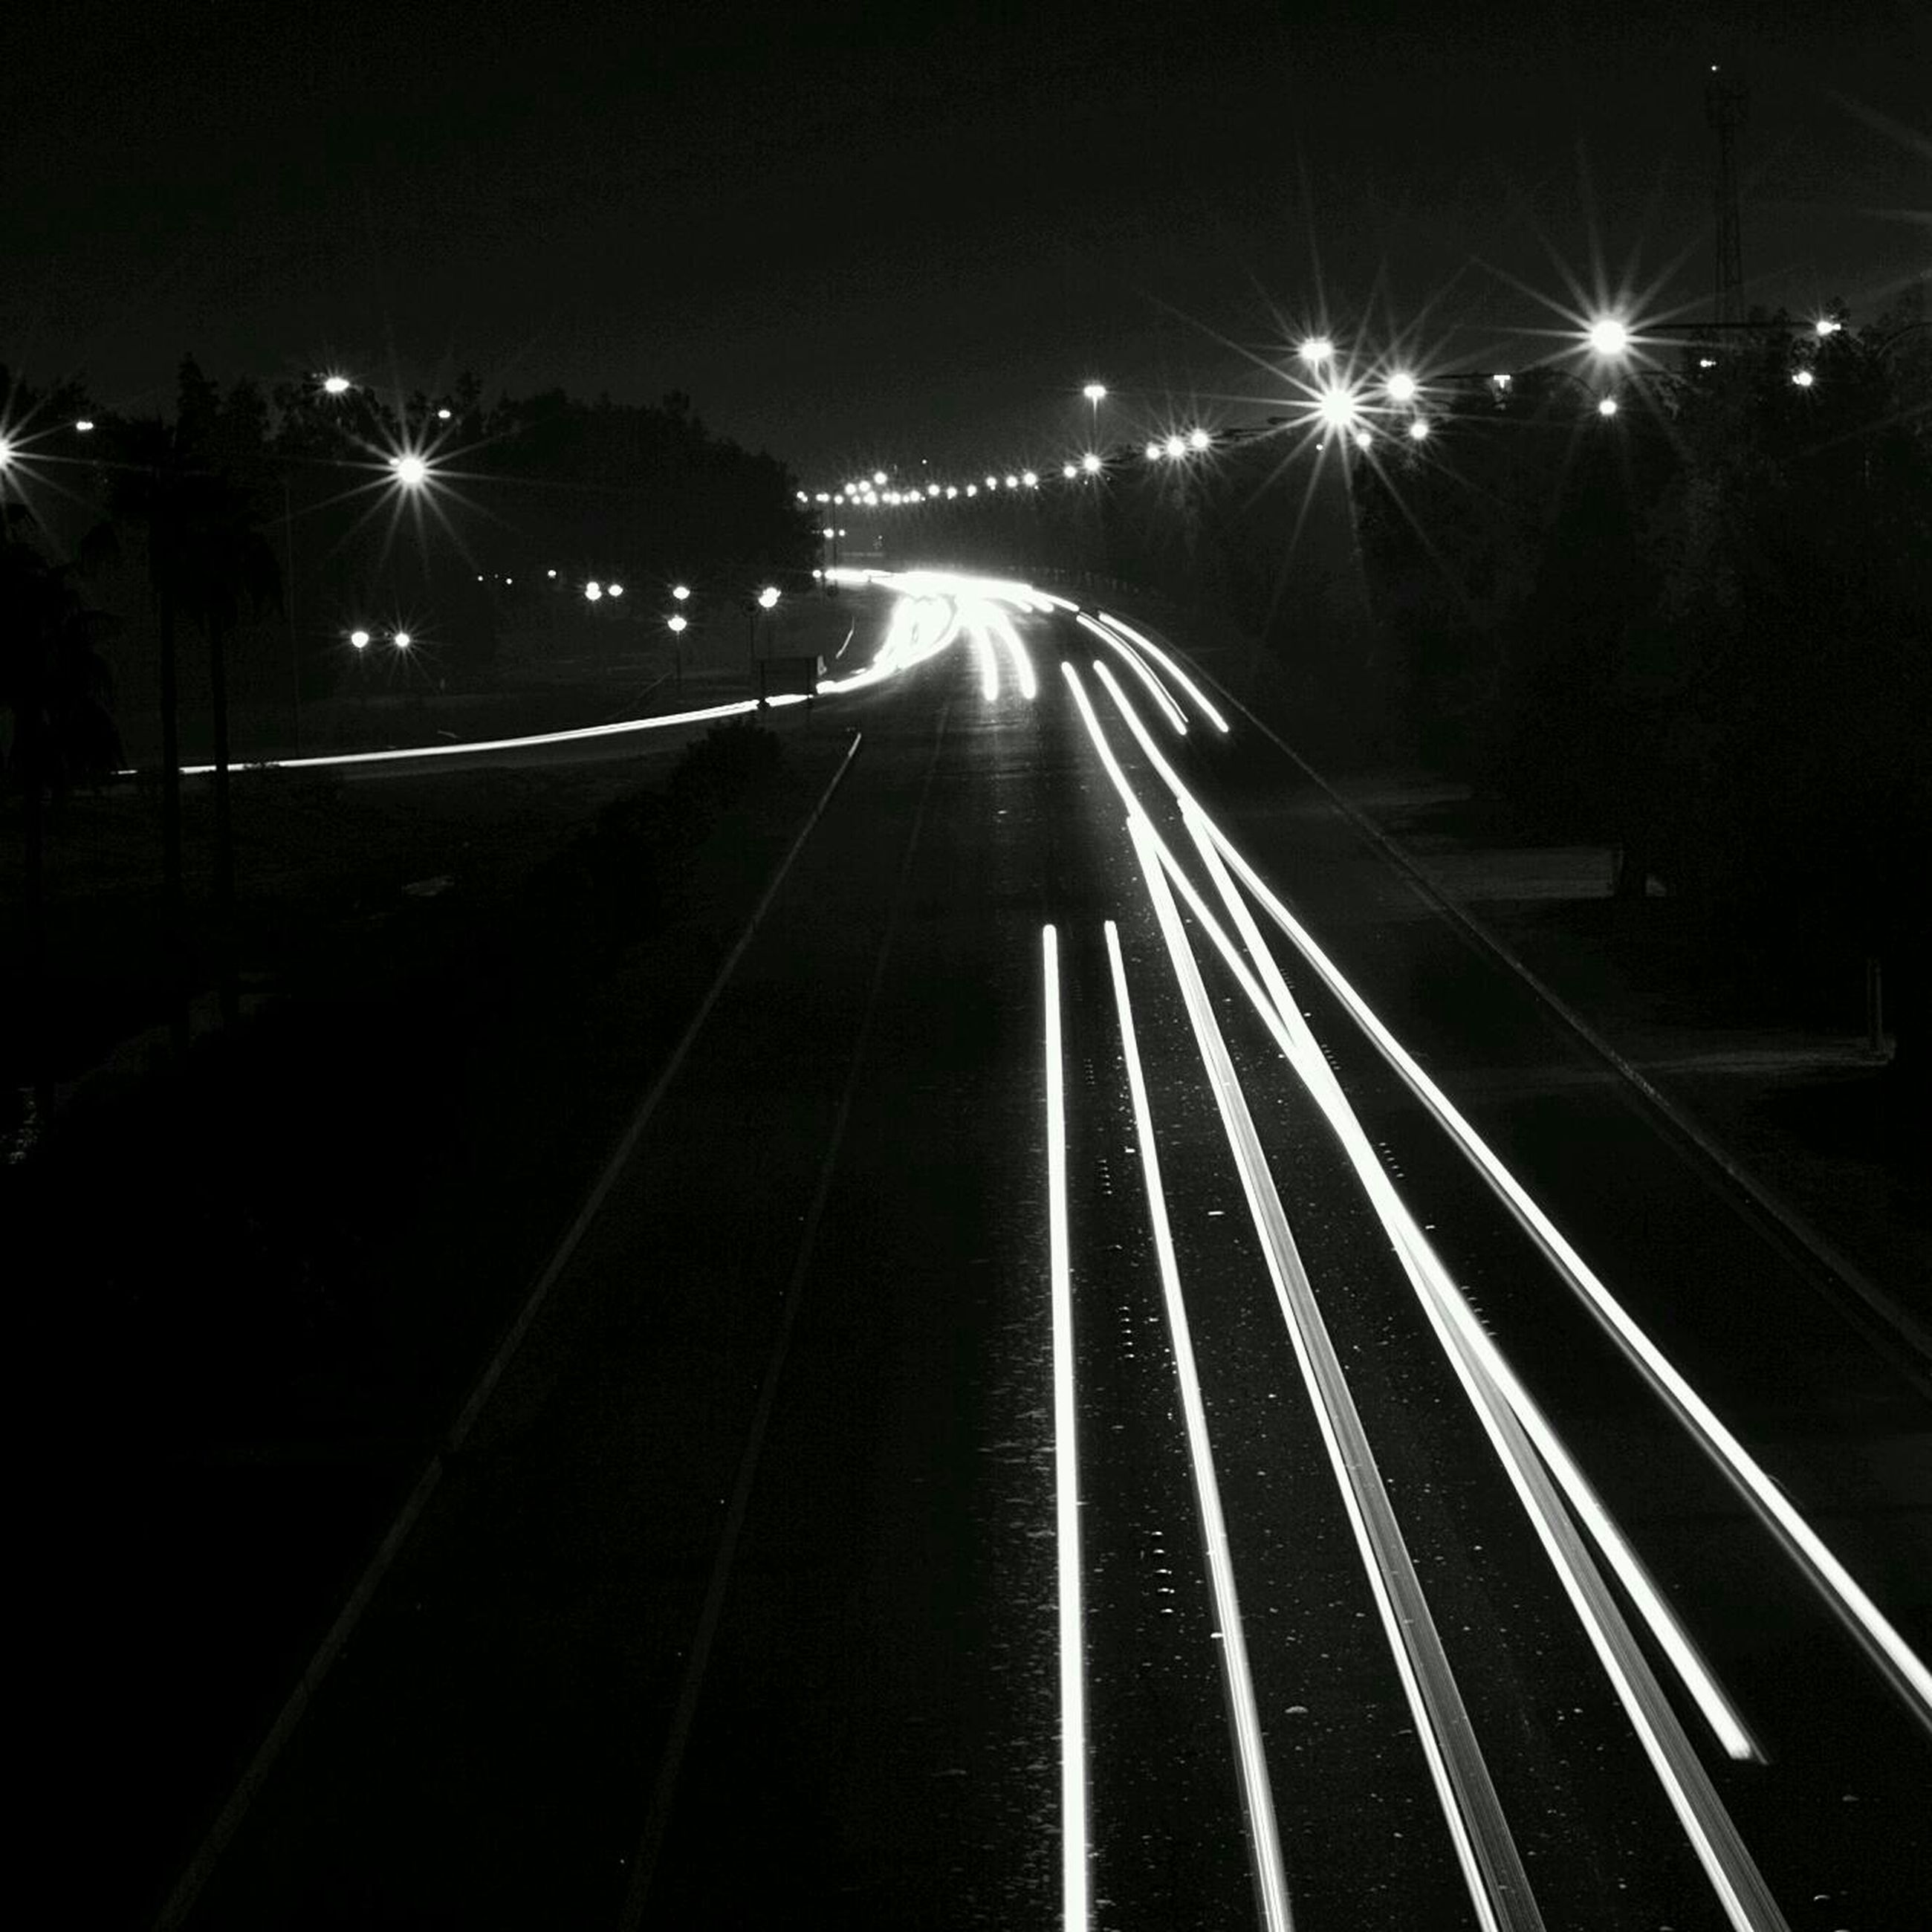 night, illuminated, transportation, the way forward, diminishing perspective, road, vanishing point, street light, road marking, light trail, lighting equipment, street, dark, high angle view, long, outdoors, empty, light - natural phenomenon, empty road, highway